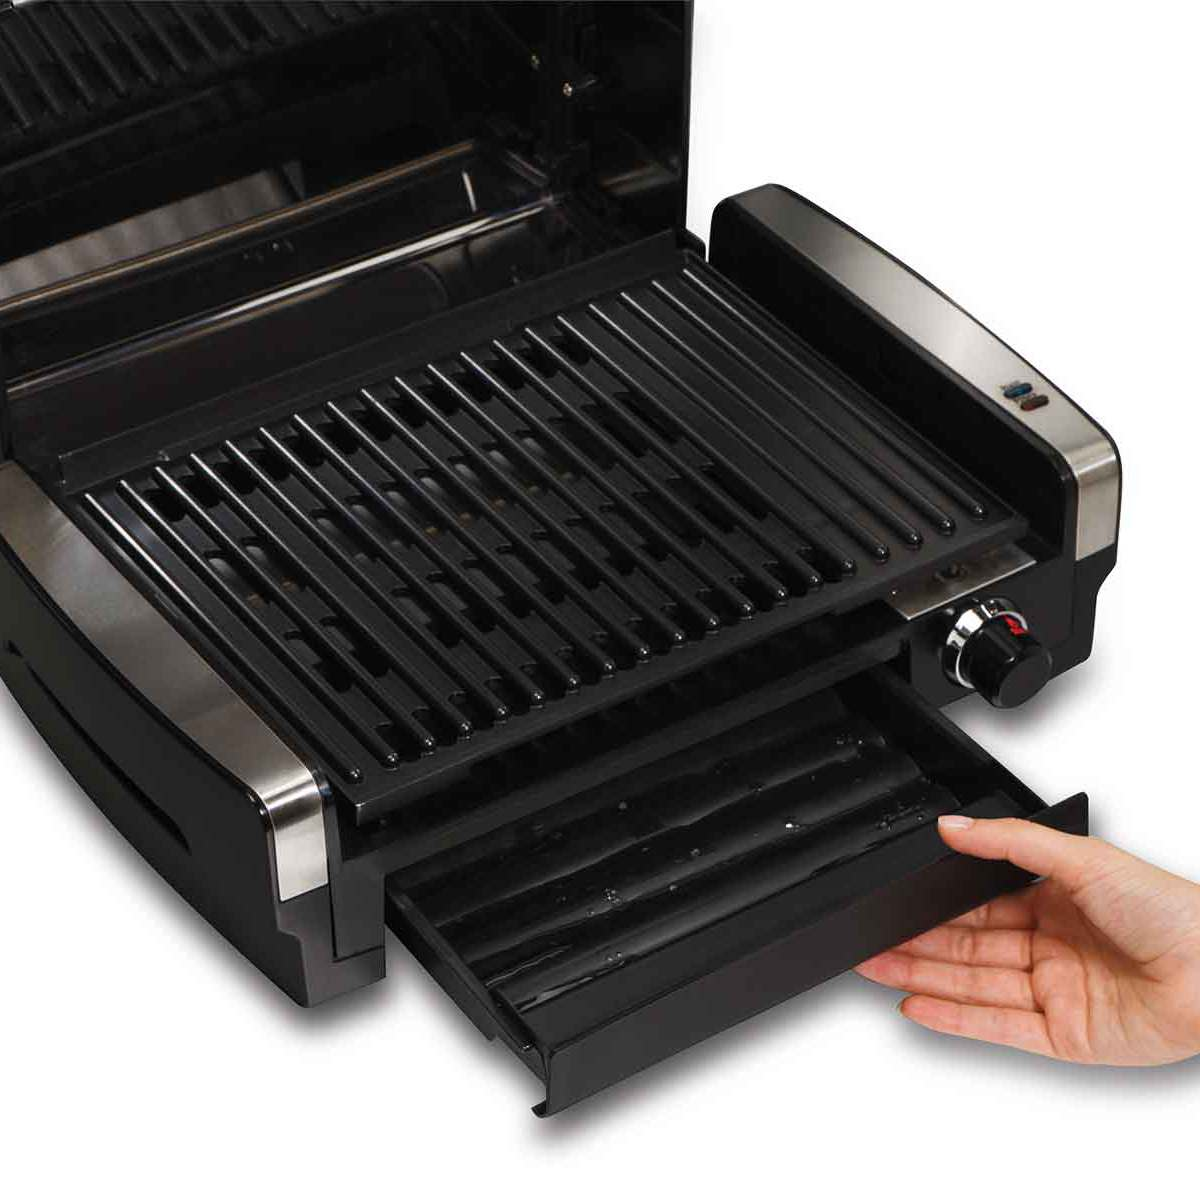 Searing Grill with Lid Window (25361)